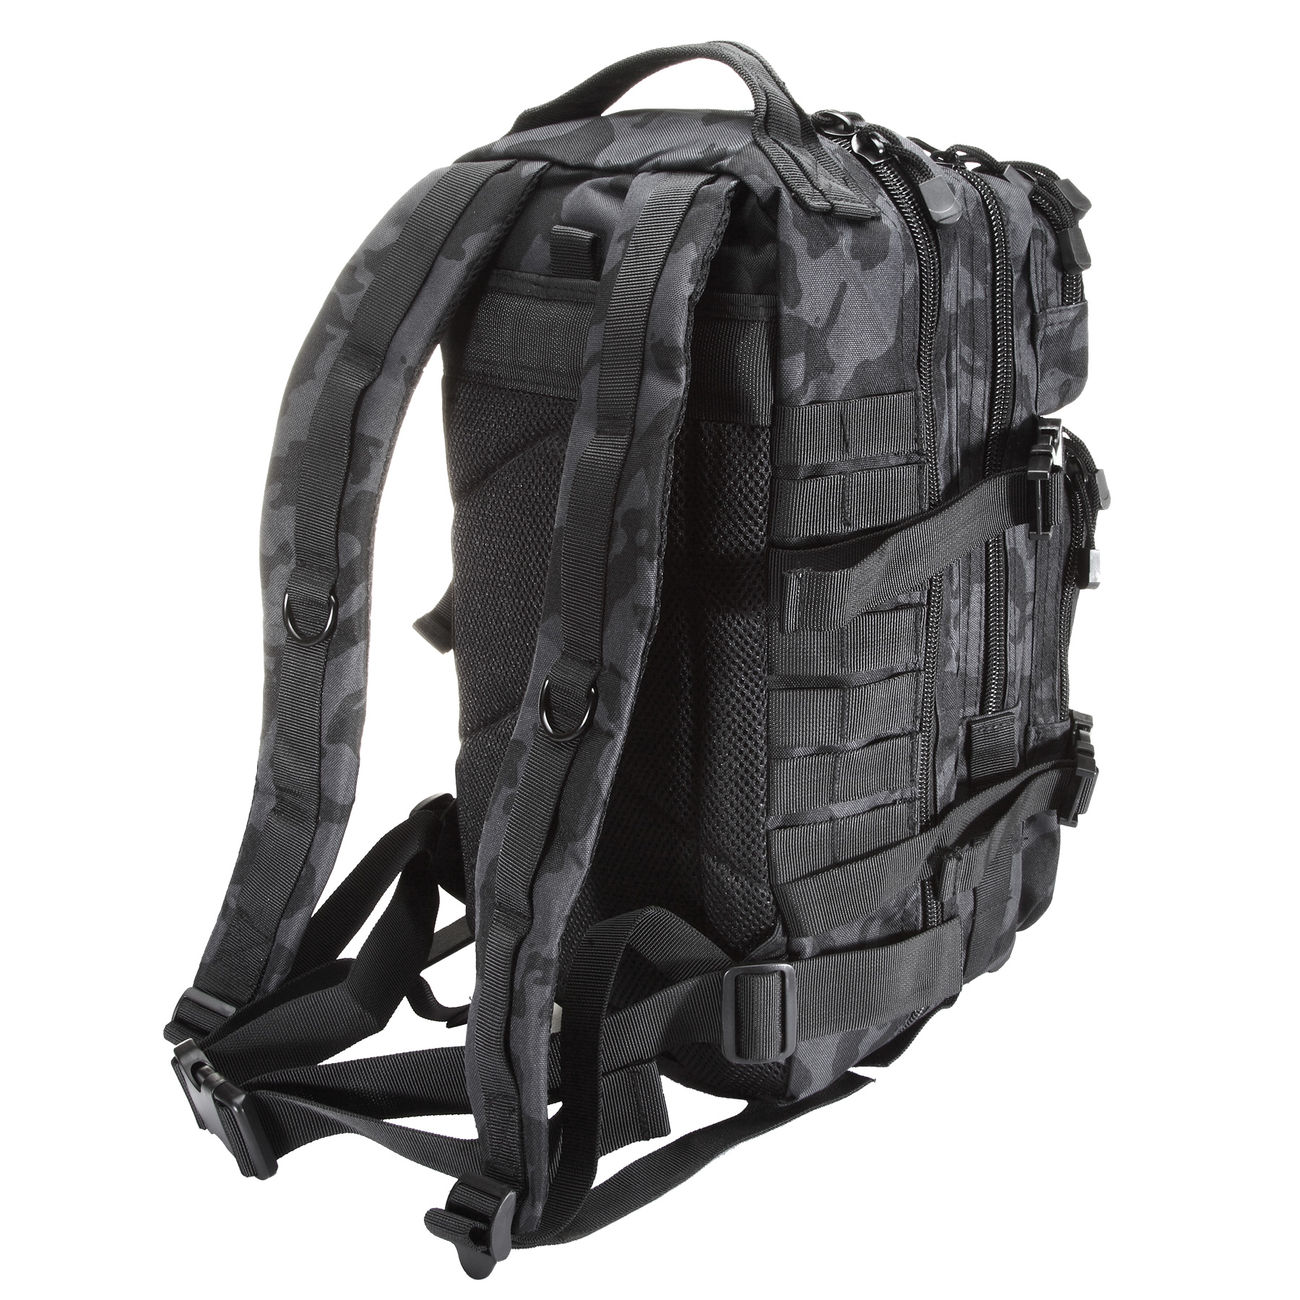 MFH US Rucksack Assault I night camo 2